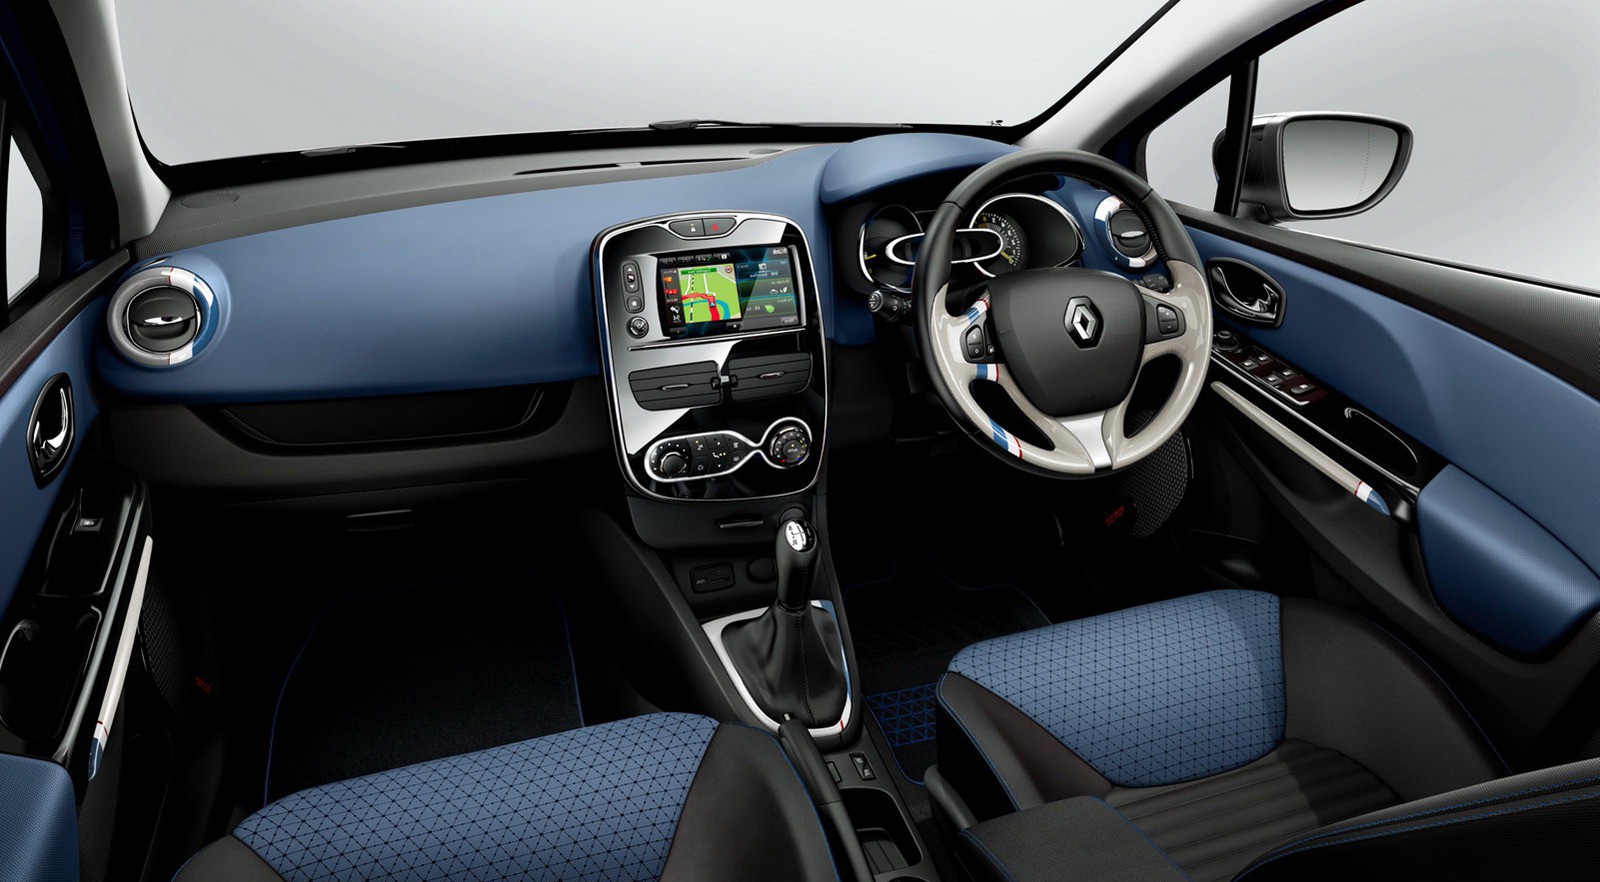 Renault clio iv review private fleet for Interieur clio 4